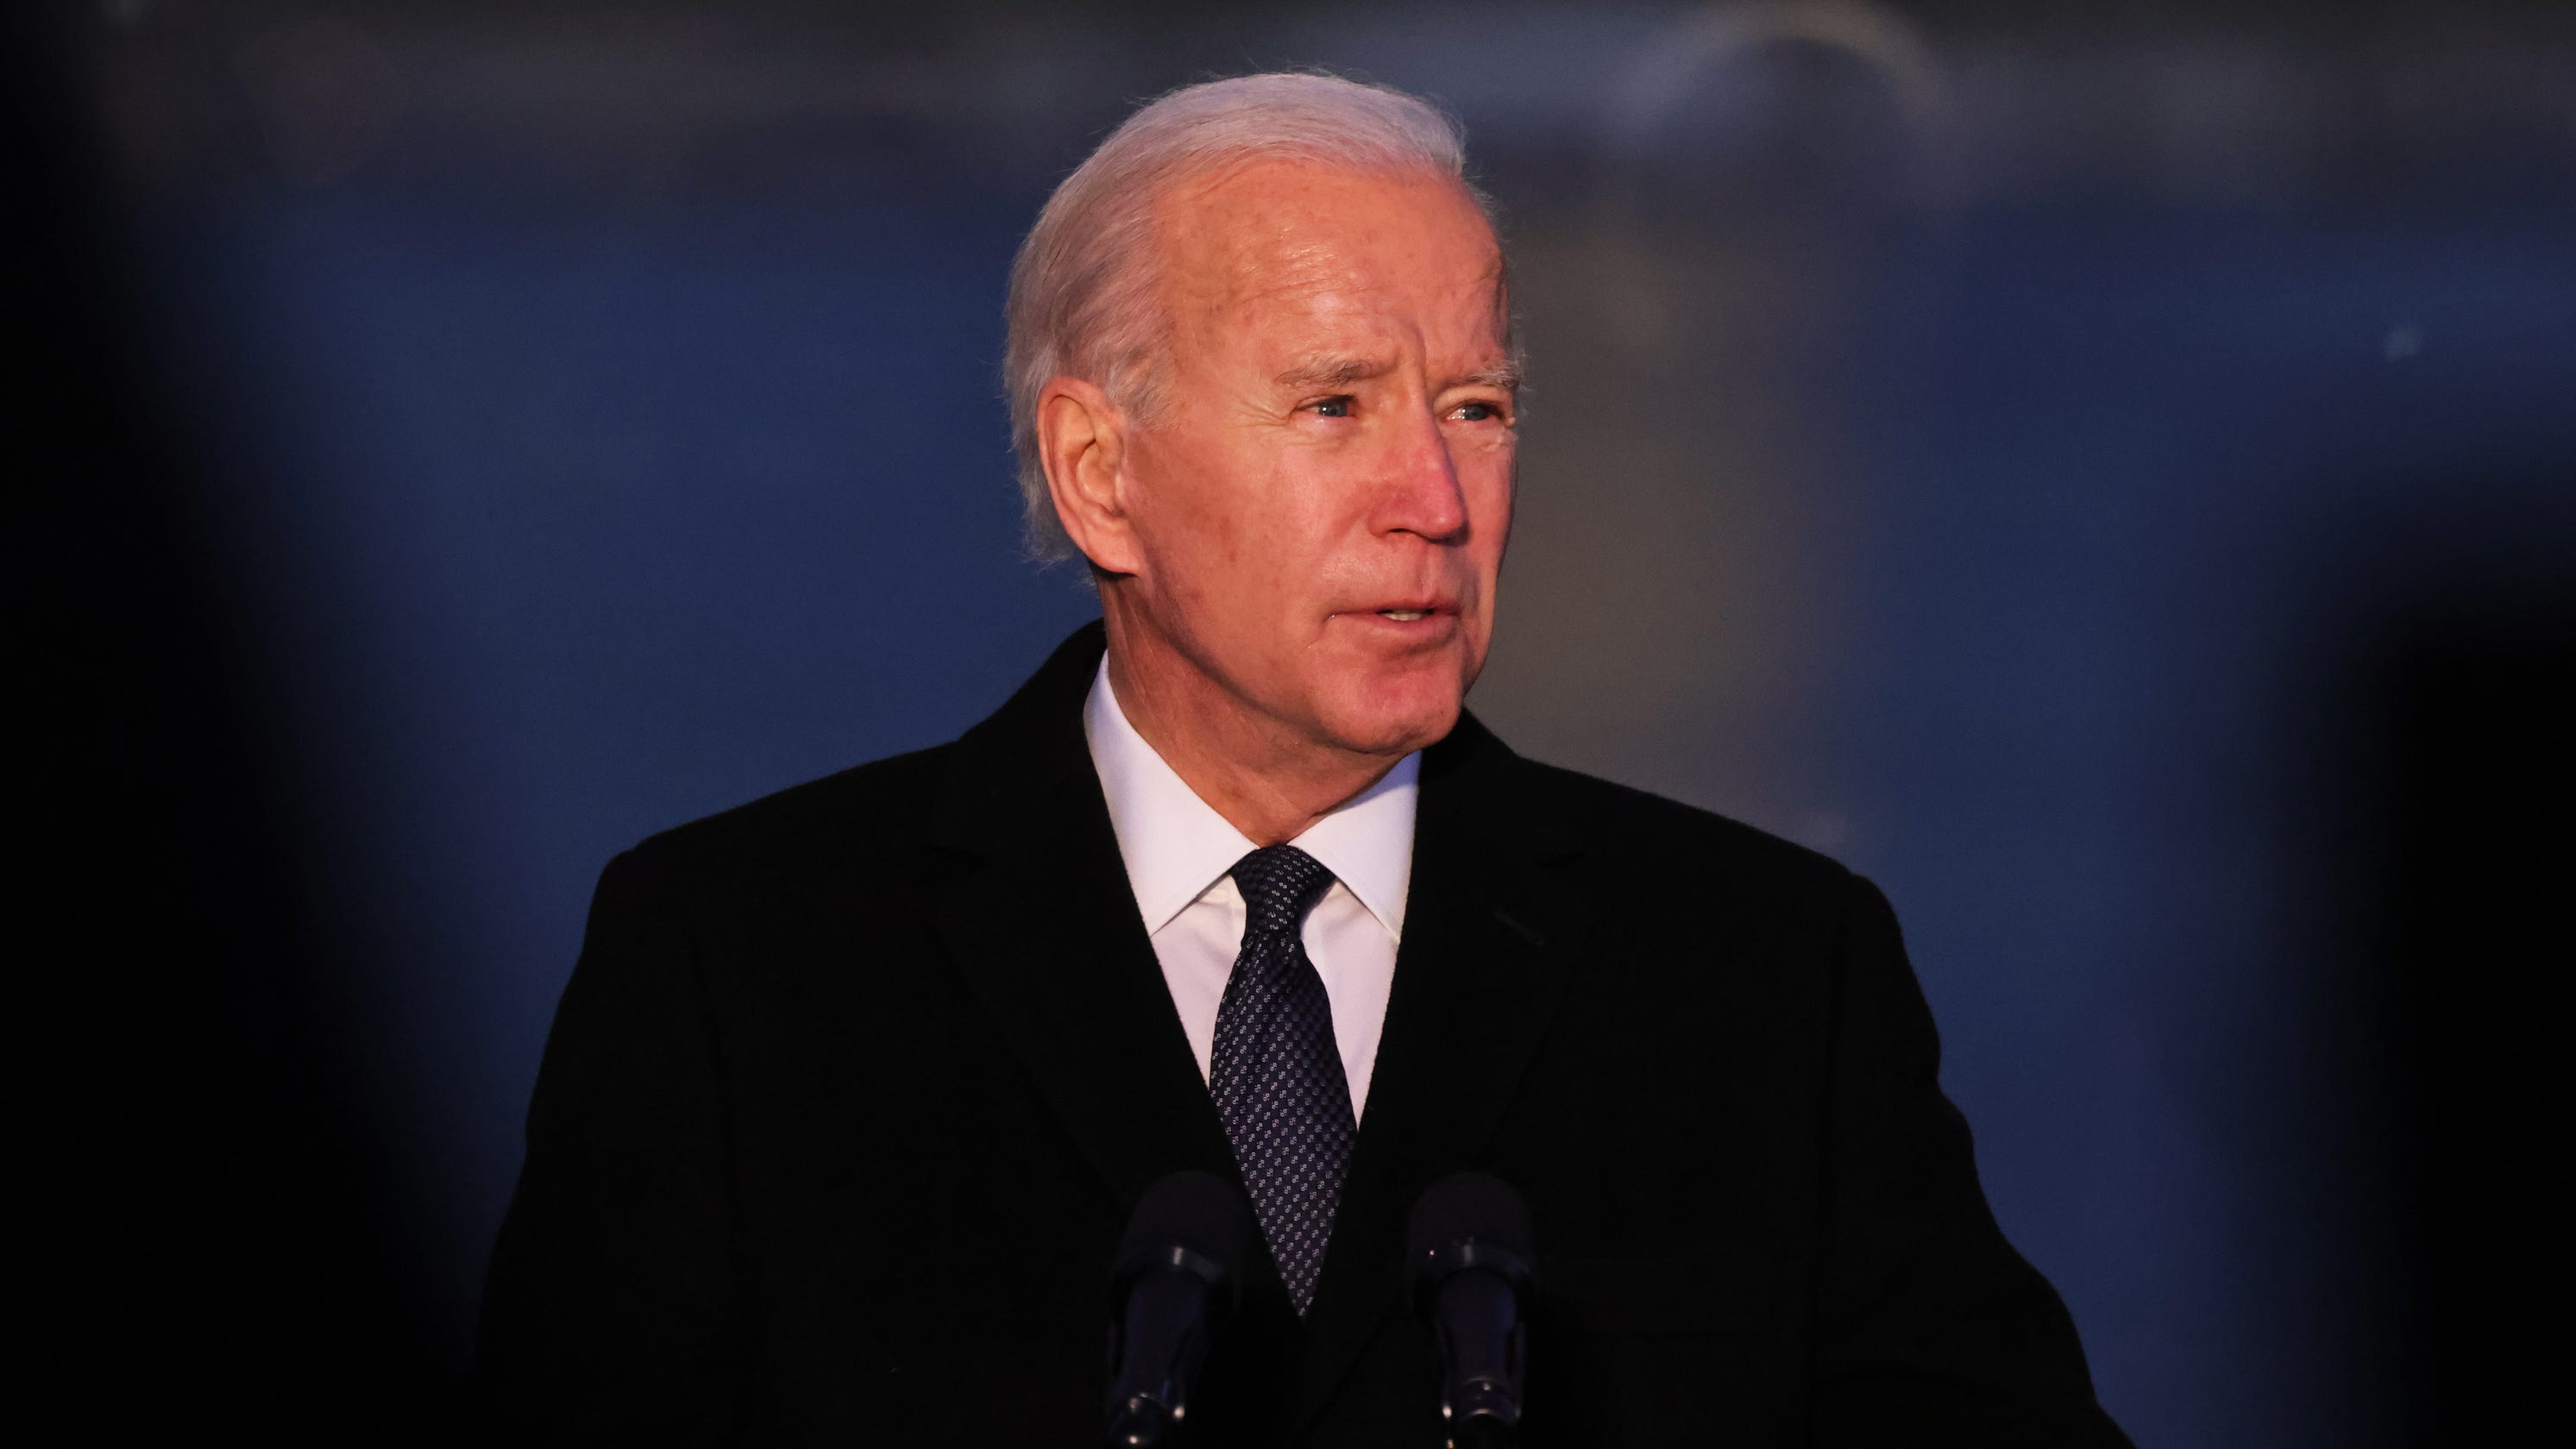 The Trumps, Jimmy Carter: Who did not attend Biden's inauguration